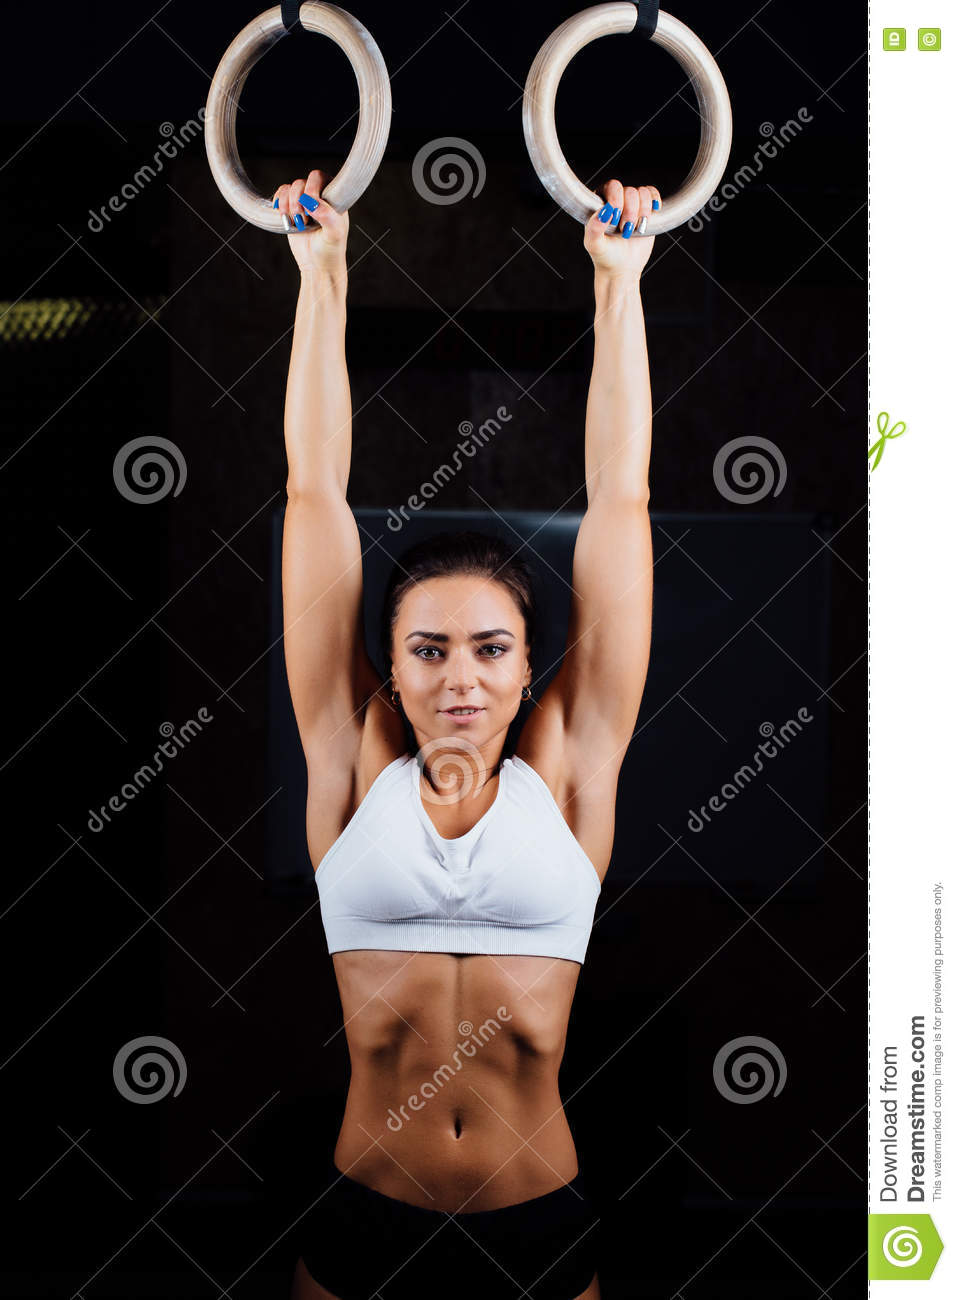 Crossfit. Portrait of young fit muscular girl in white top using gymnastic